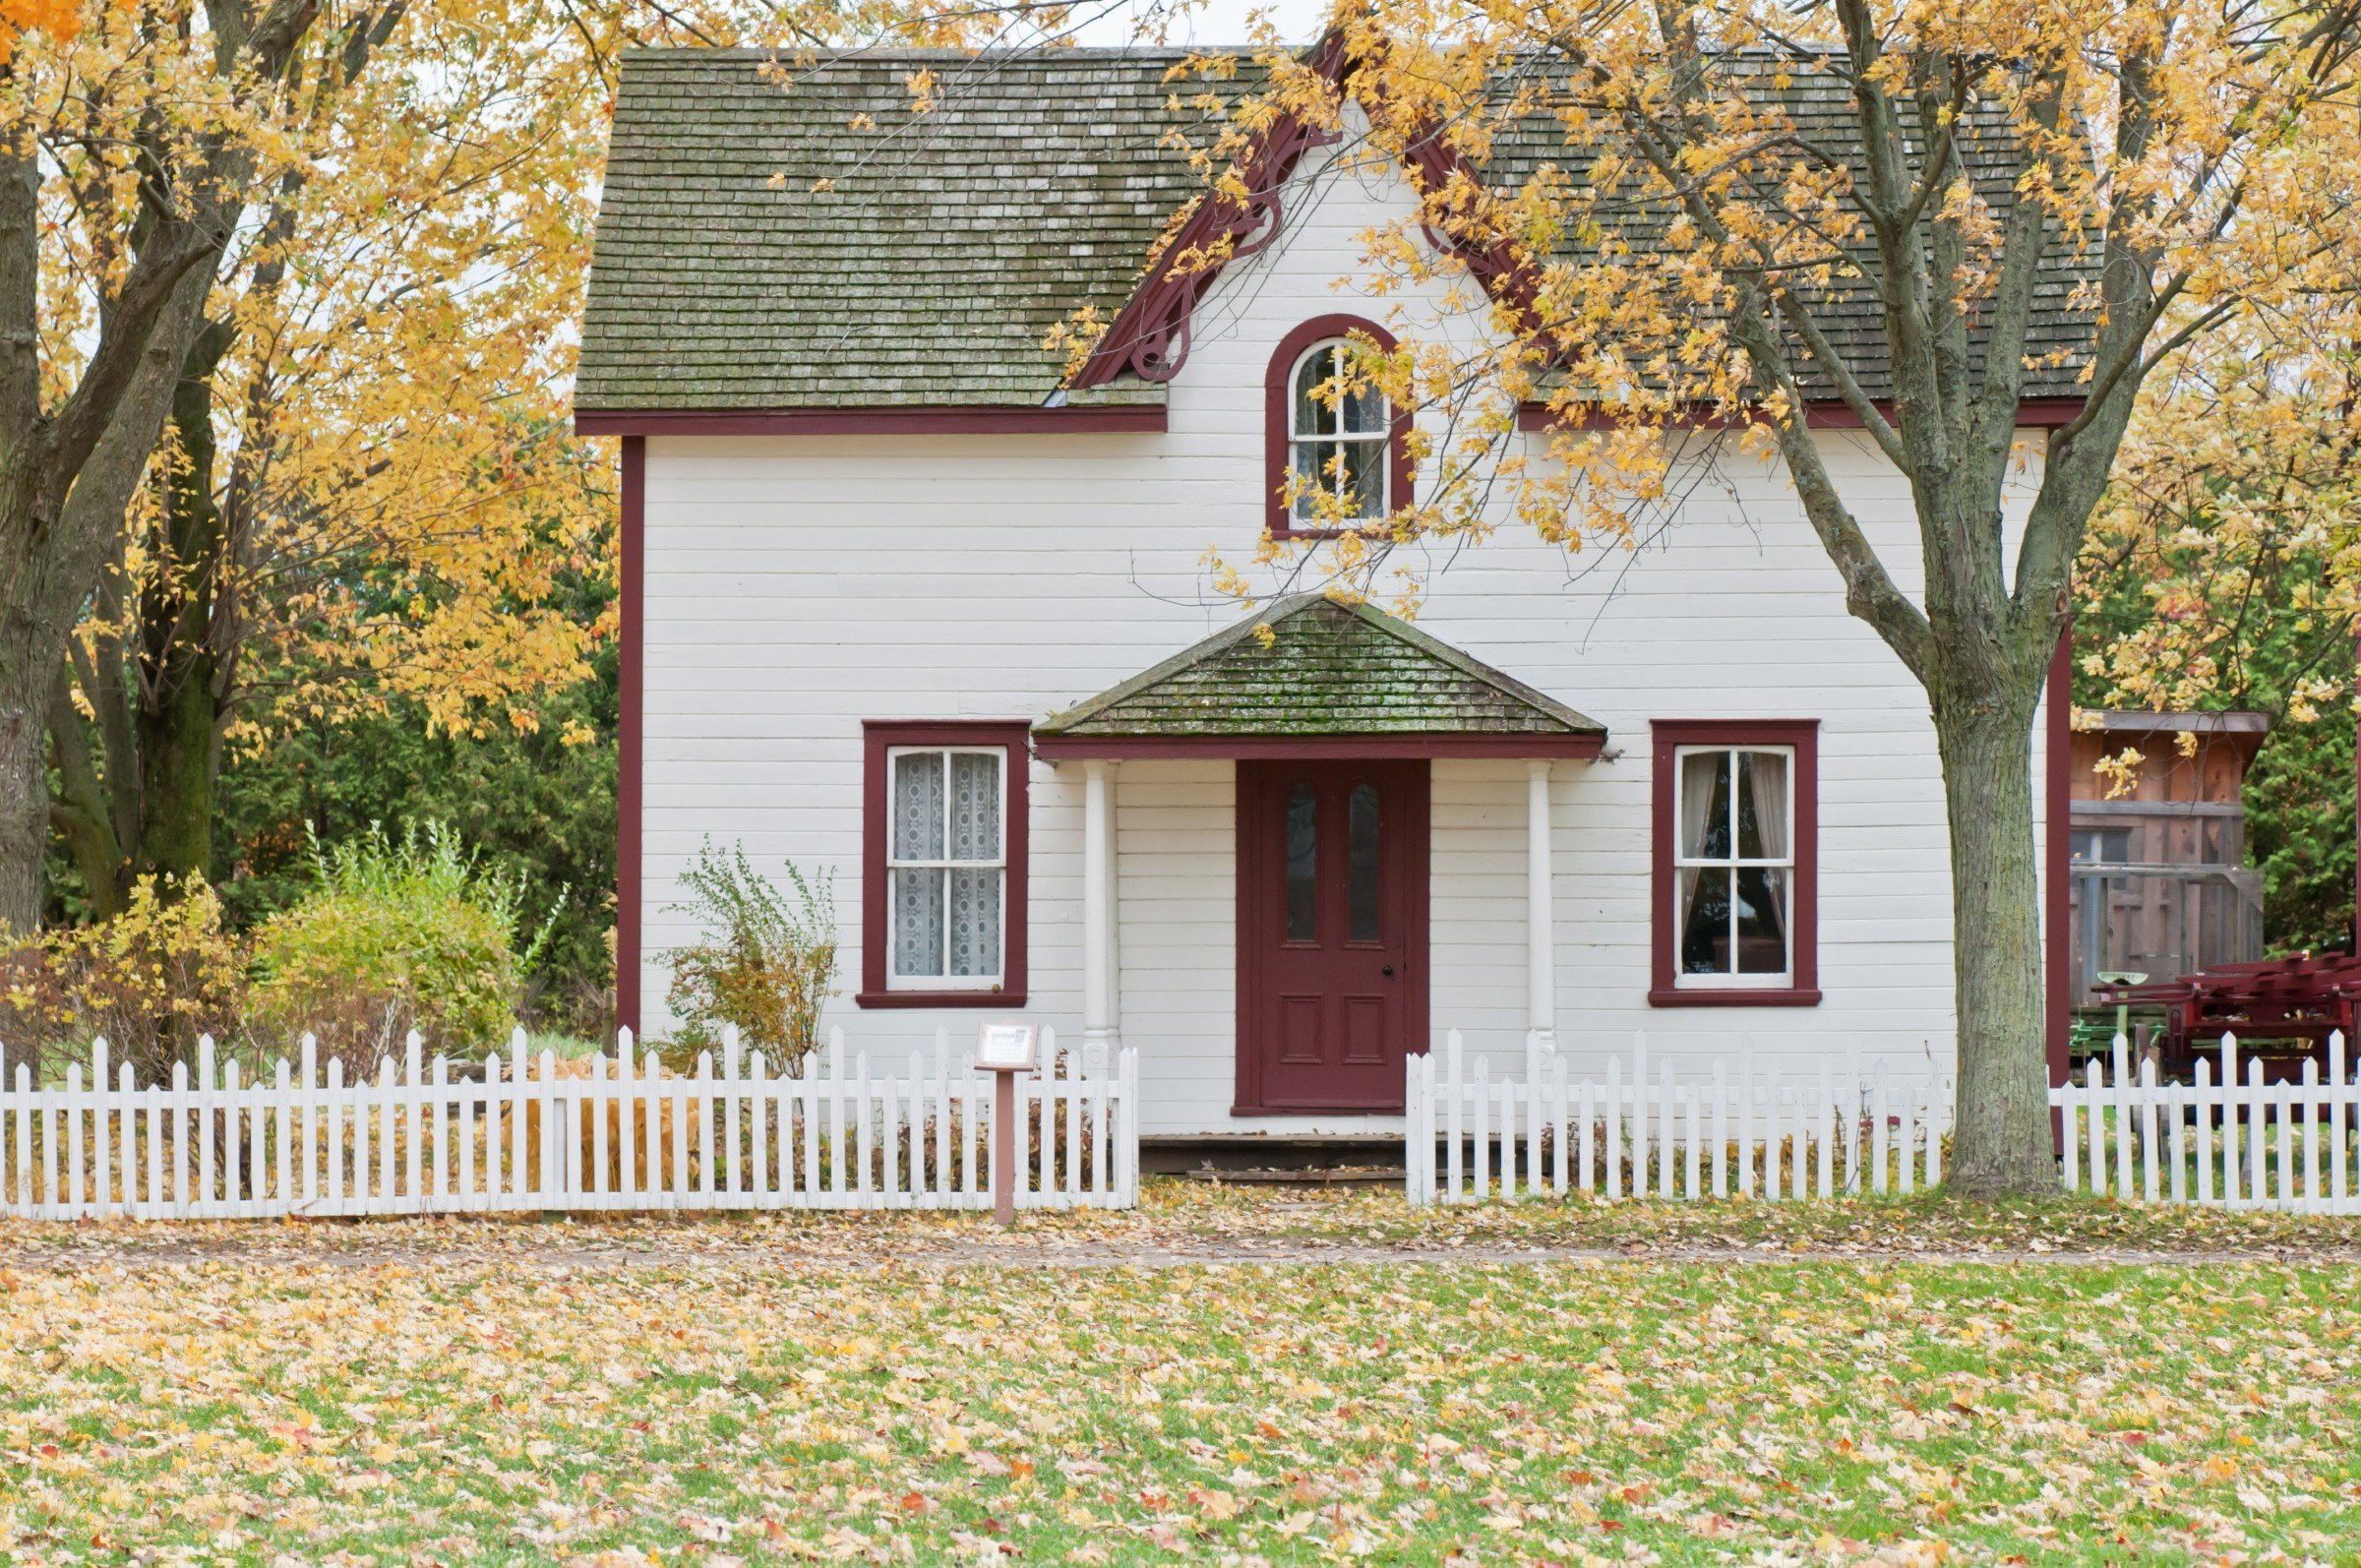 How Long Will It Take To Sell My House As Is?